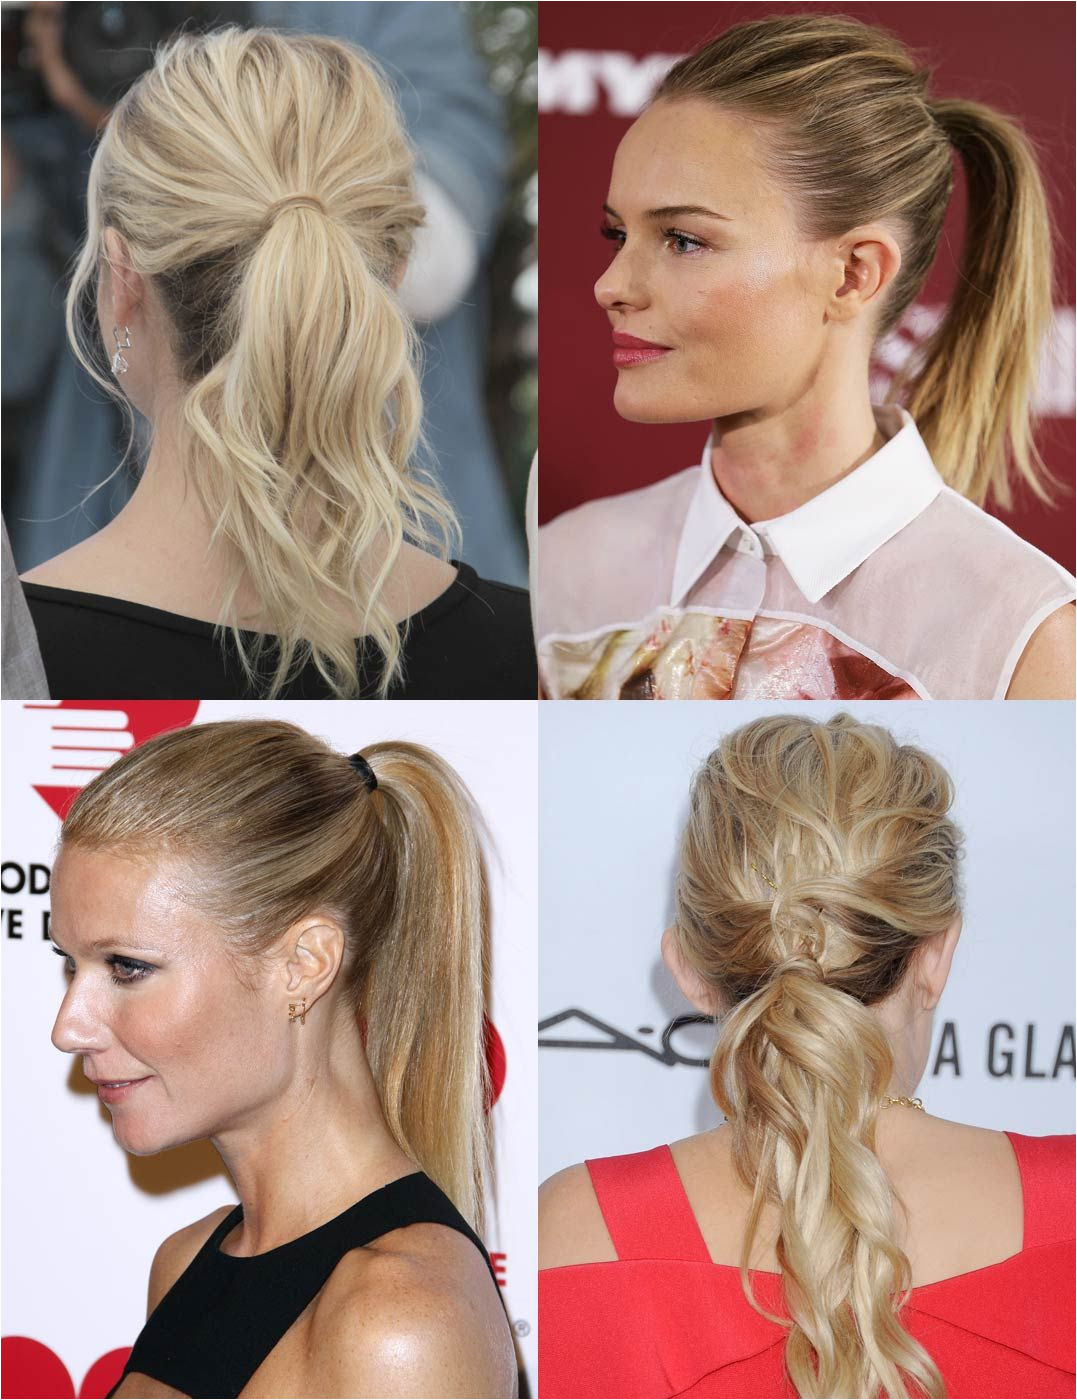 14 Ponytail Hairstyles Giving The School Girl Updo A High Fashion Overhaul